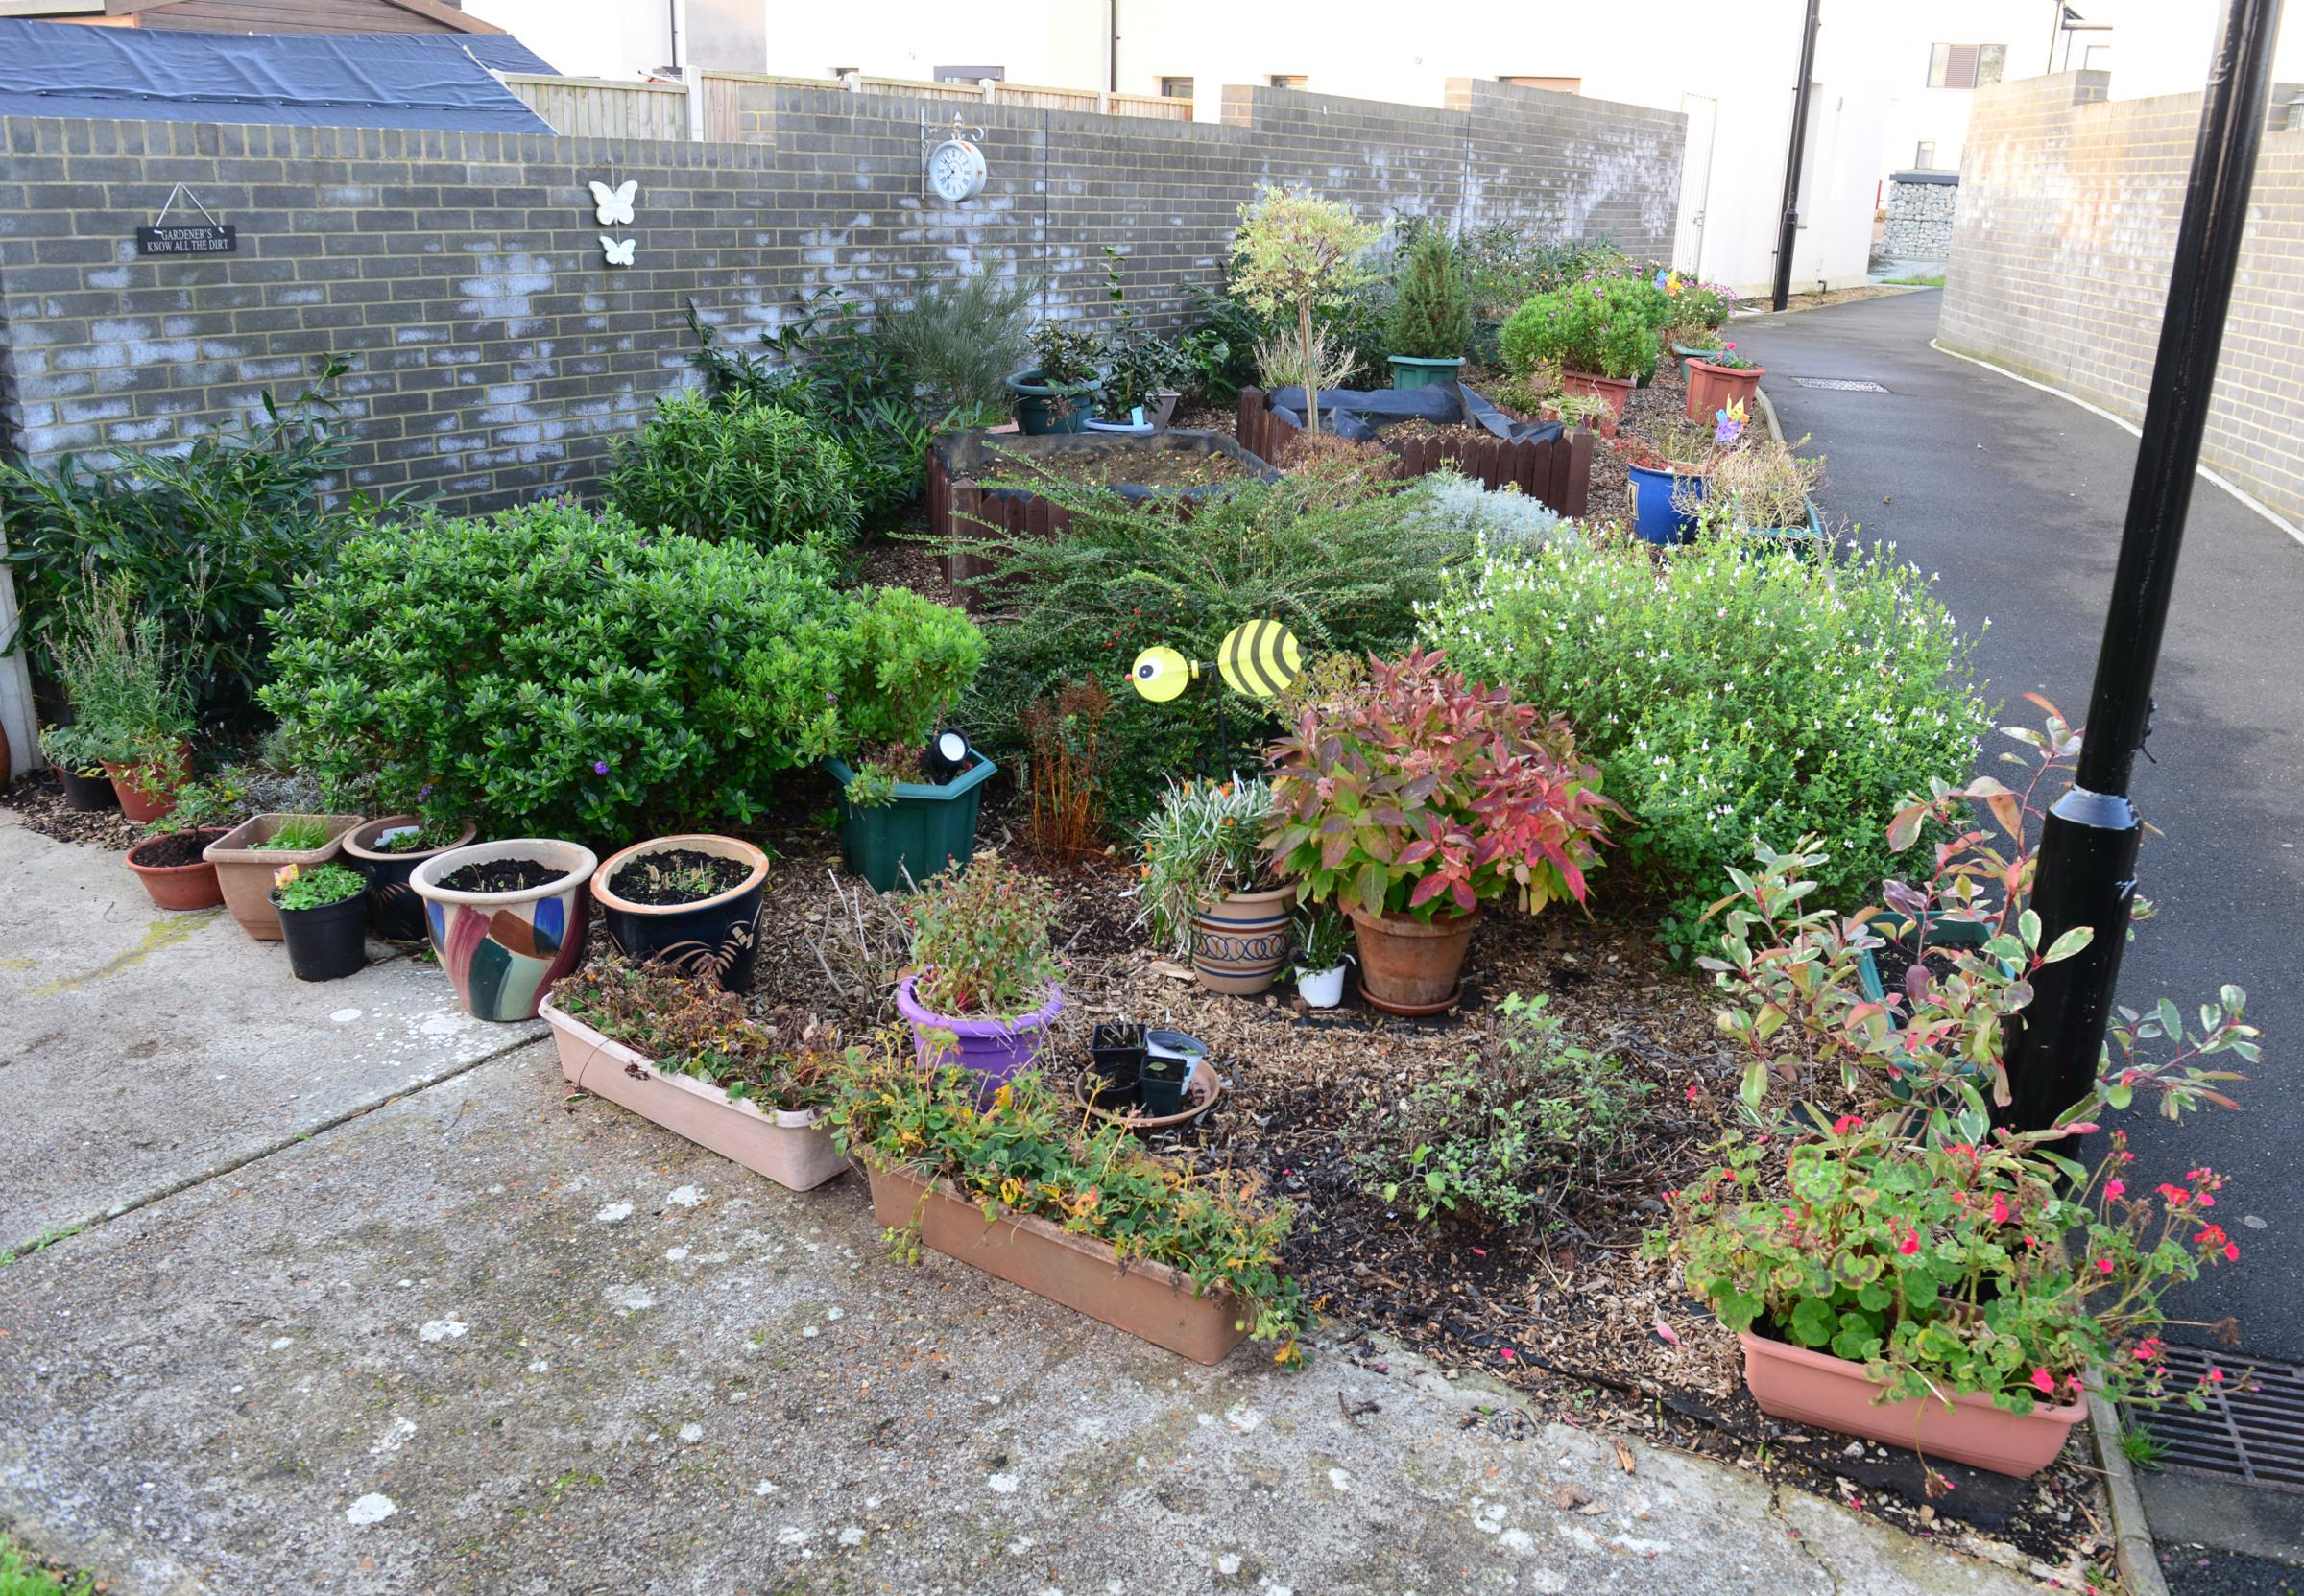 Isle of Wight residents dismayed at plans to replace community garden with bin store